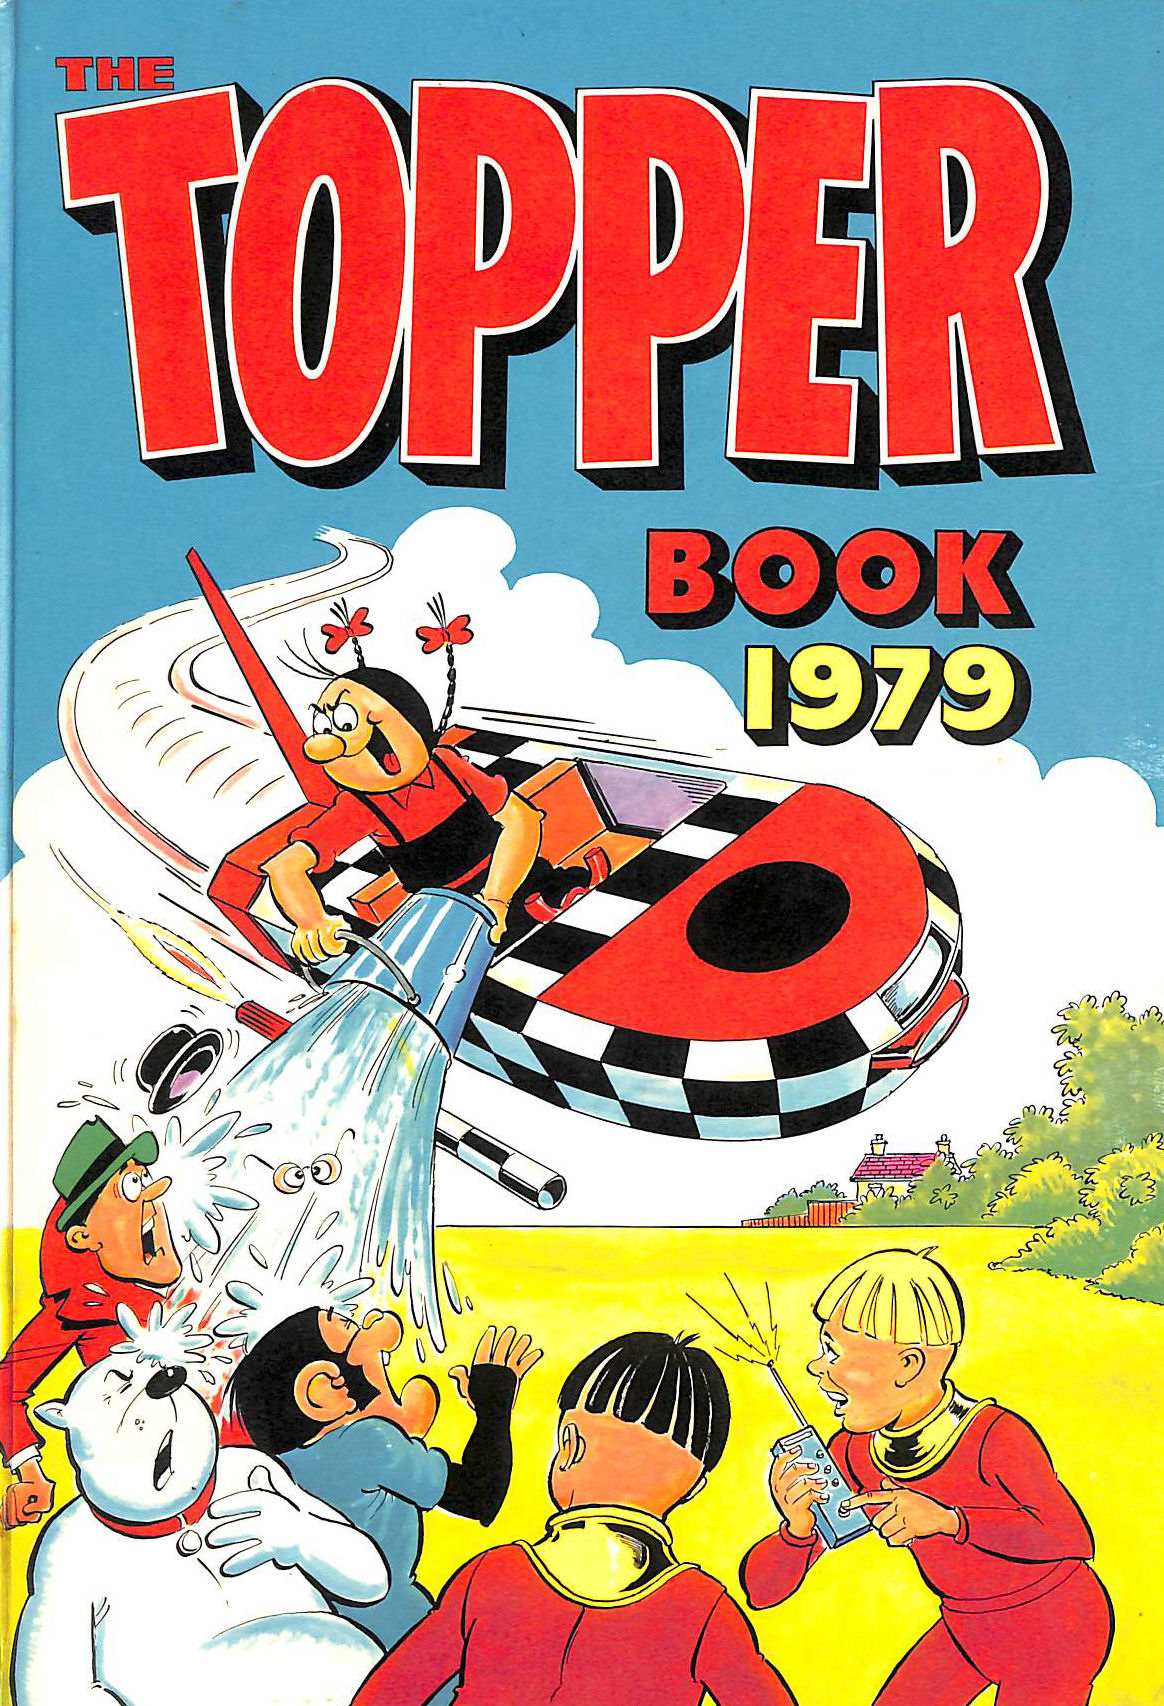 Image for The Topper Book 1979